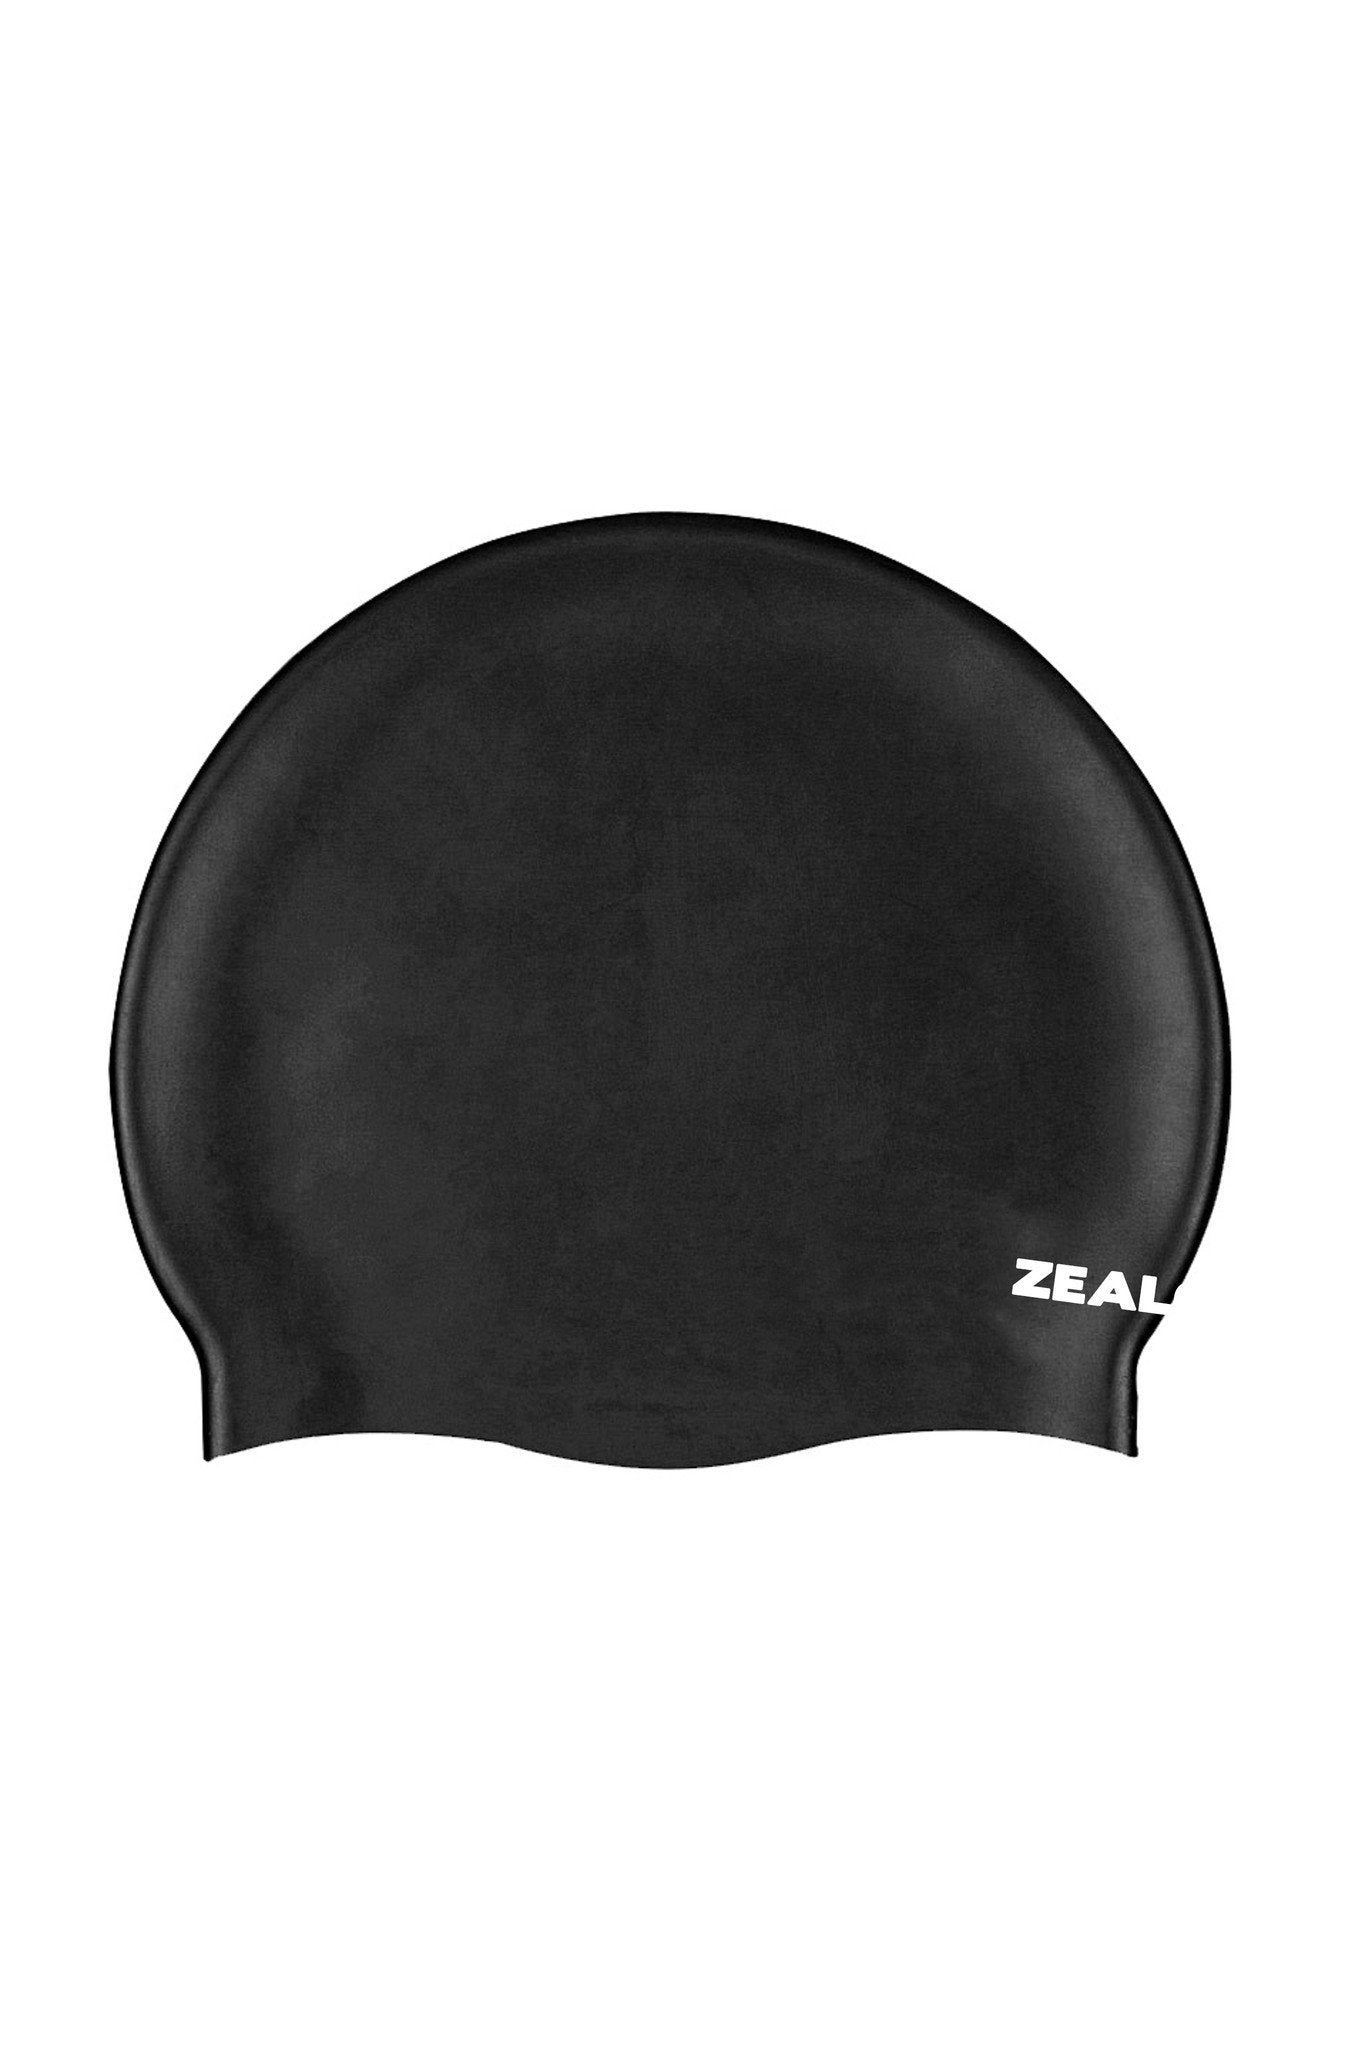 Black Race Cap Silicone Cap - Shop Zealous Training Swimwear